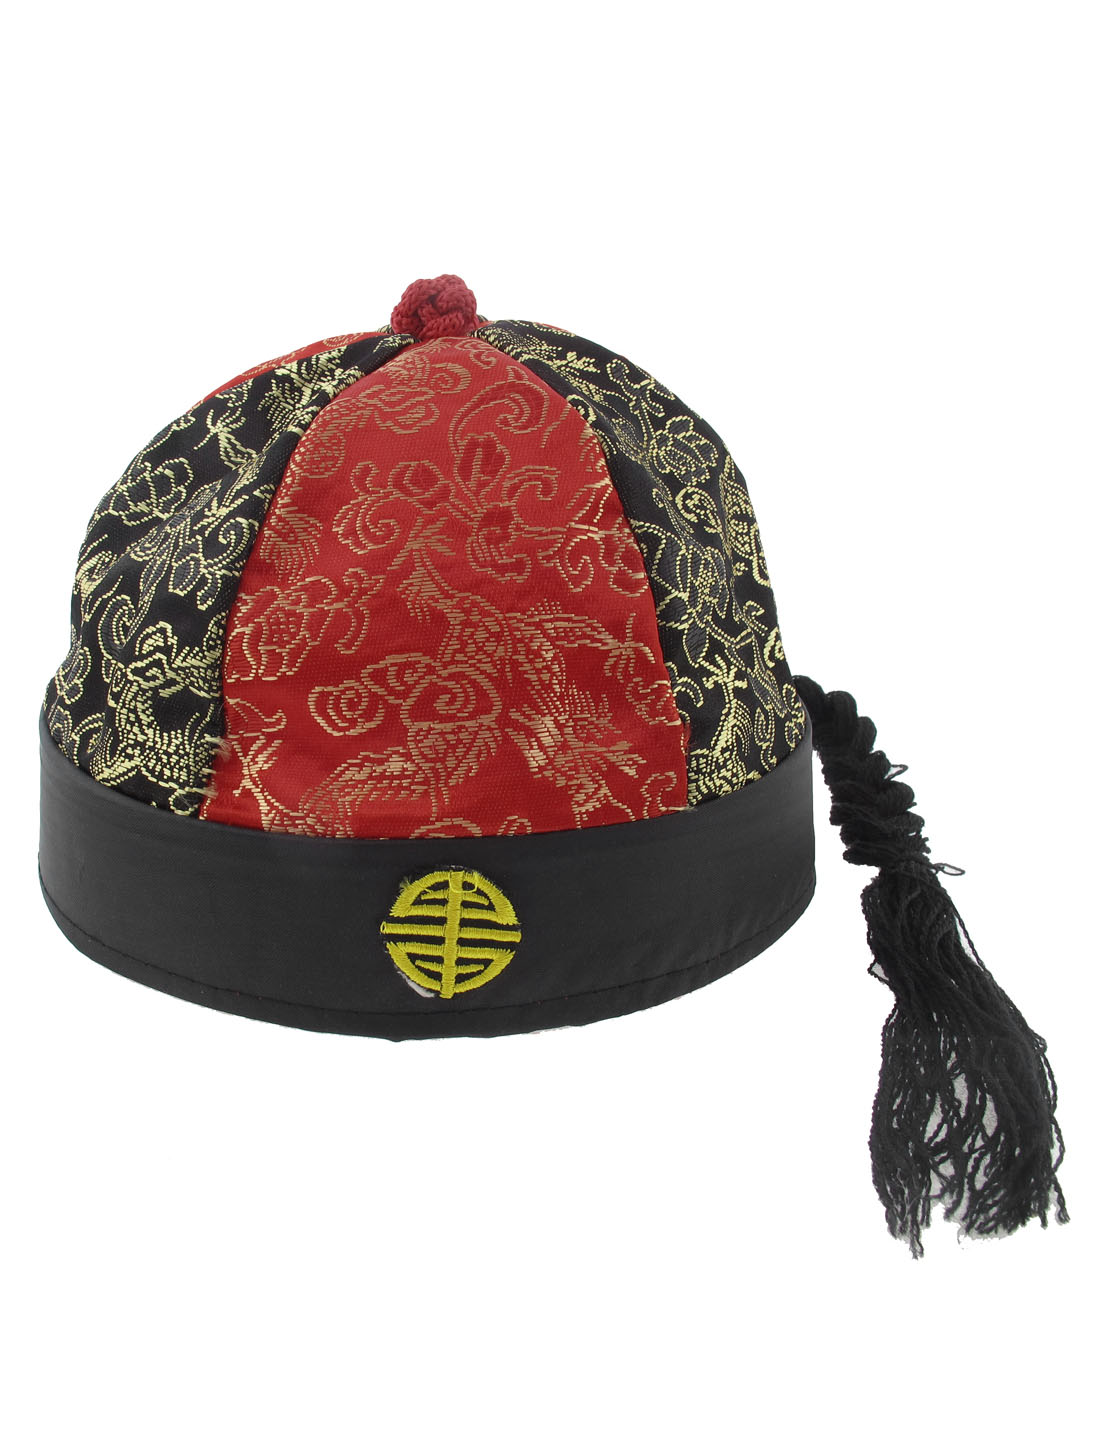 Chinese Landlord Oriental Asian Hat Cap Party Costume Black Red with Ponytail